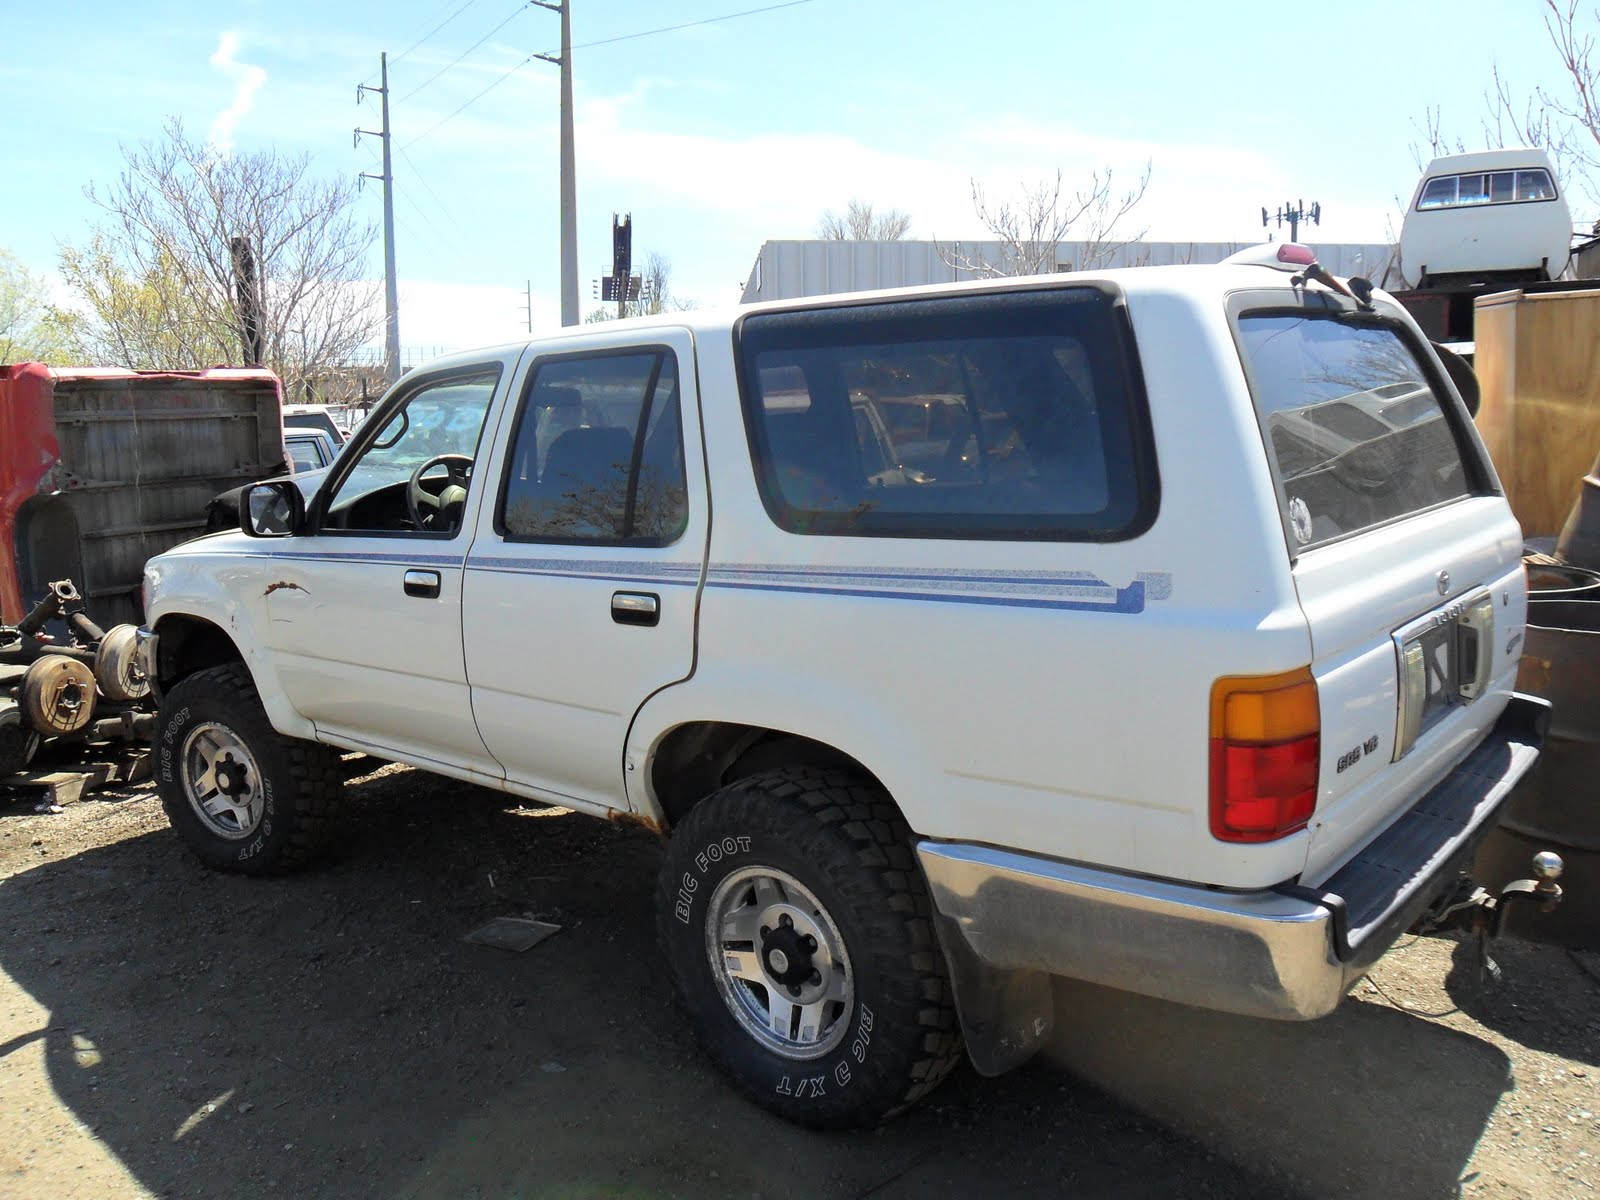 New Arrivals At Jims Used Toyota Truck Parts Toyota Runner - 4runner truck